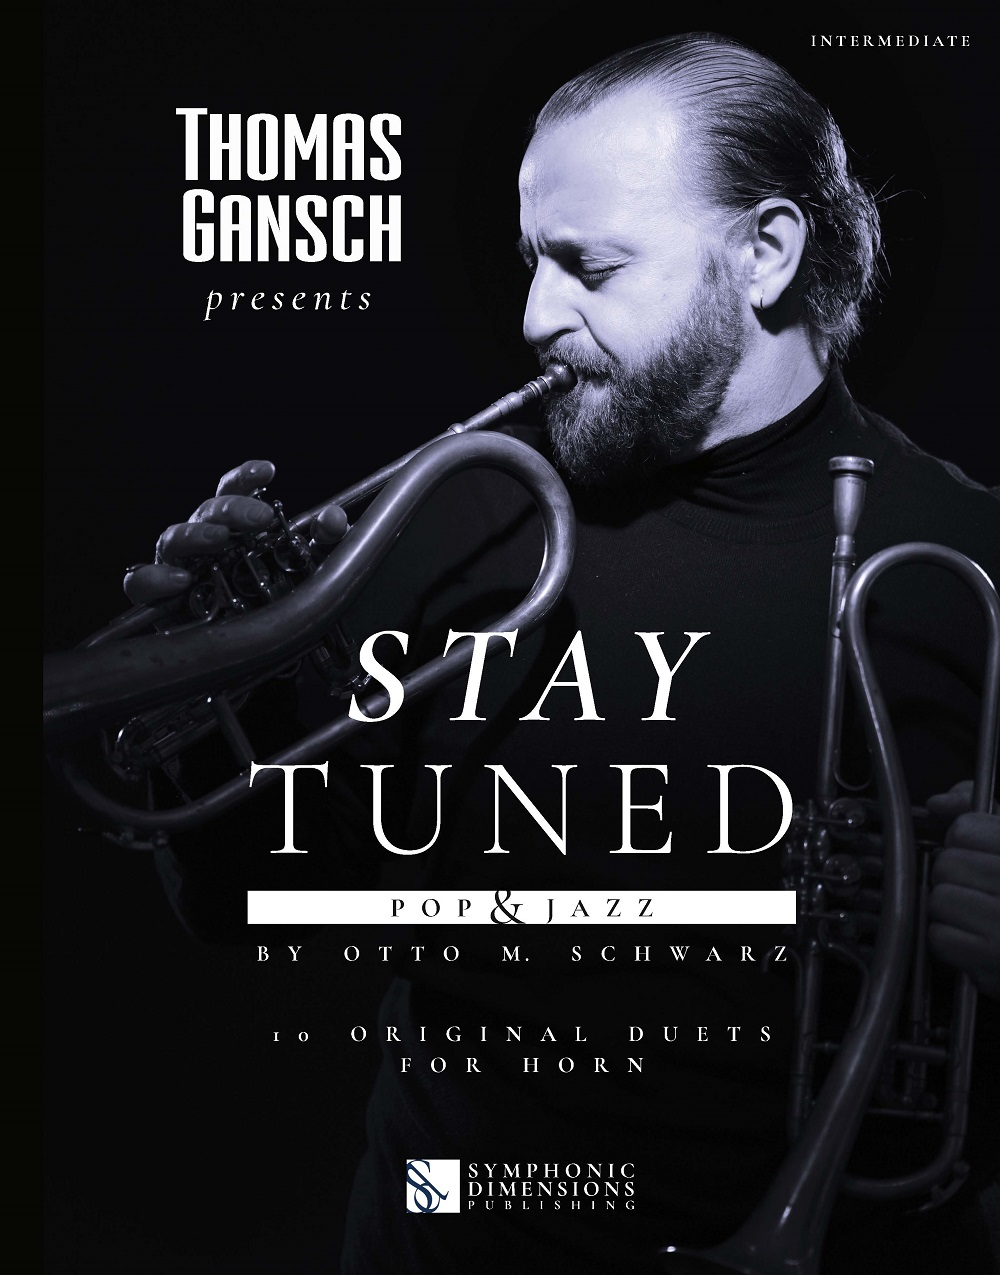 Otto M. Schwarz: Thomas Gansch presents Stay Tuned - Pop & Jazz: French Horn